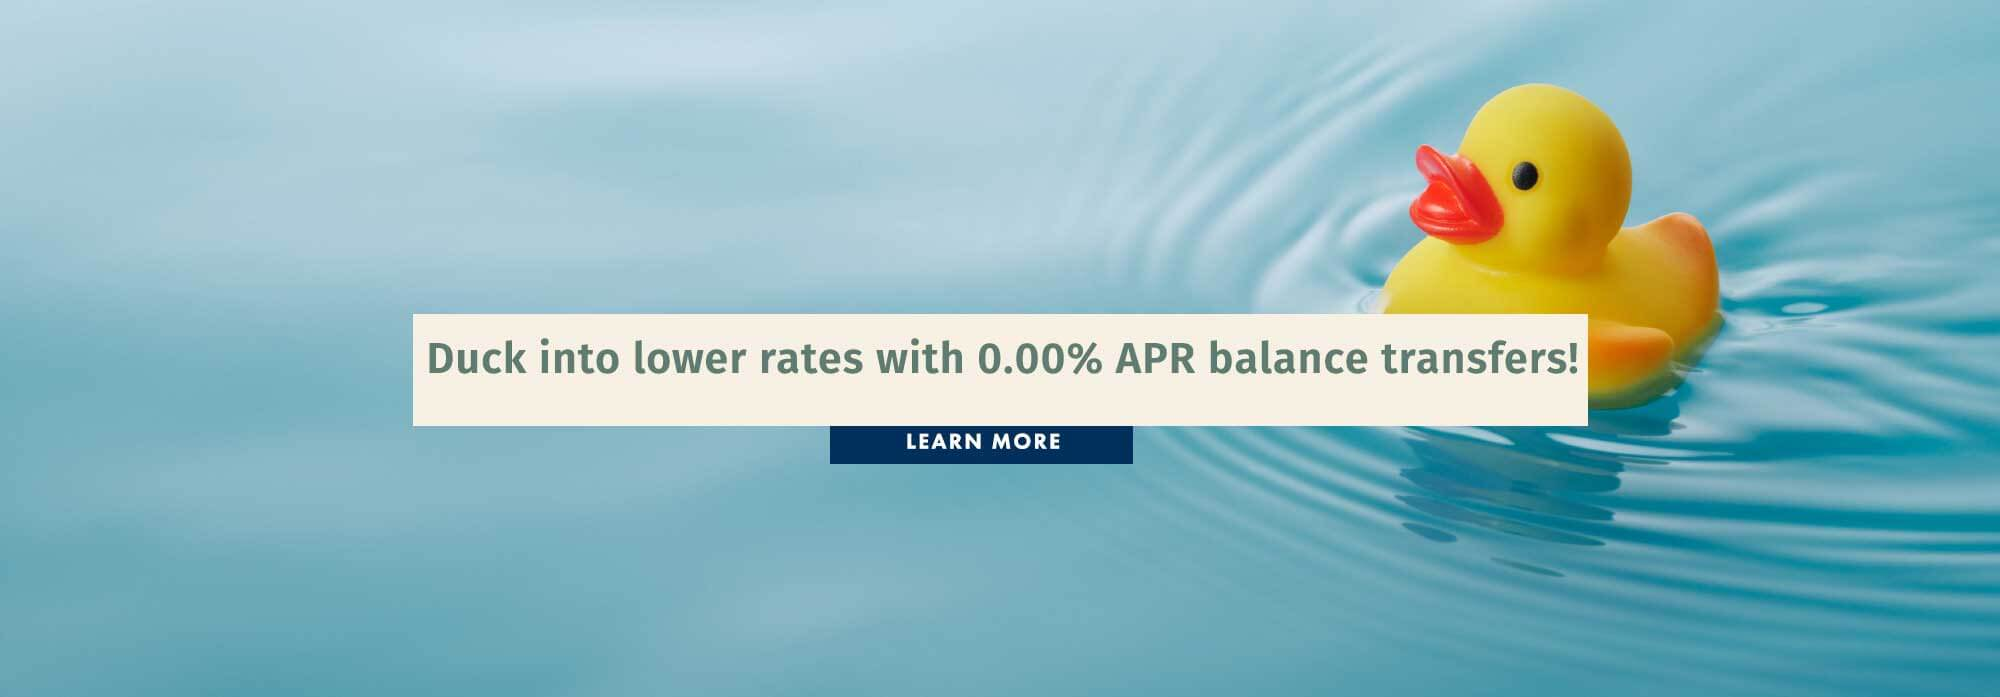 Duck into lower rates with 0.00% APR balance transfers!